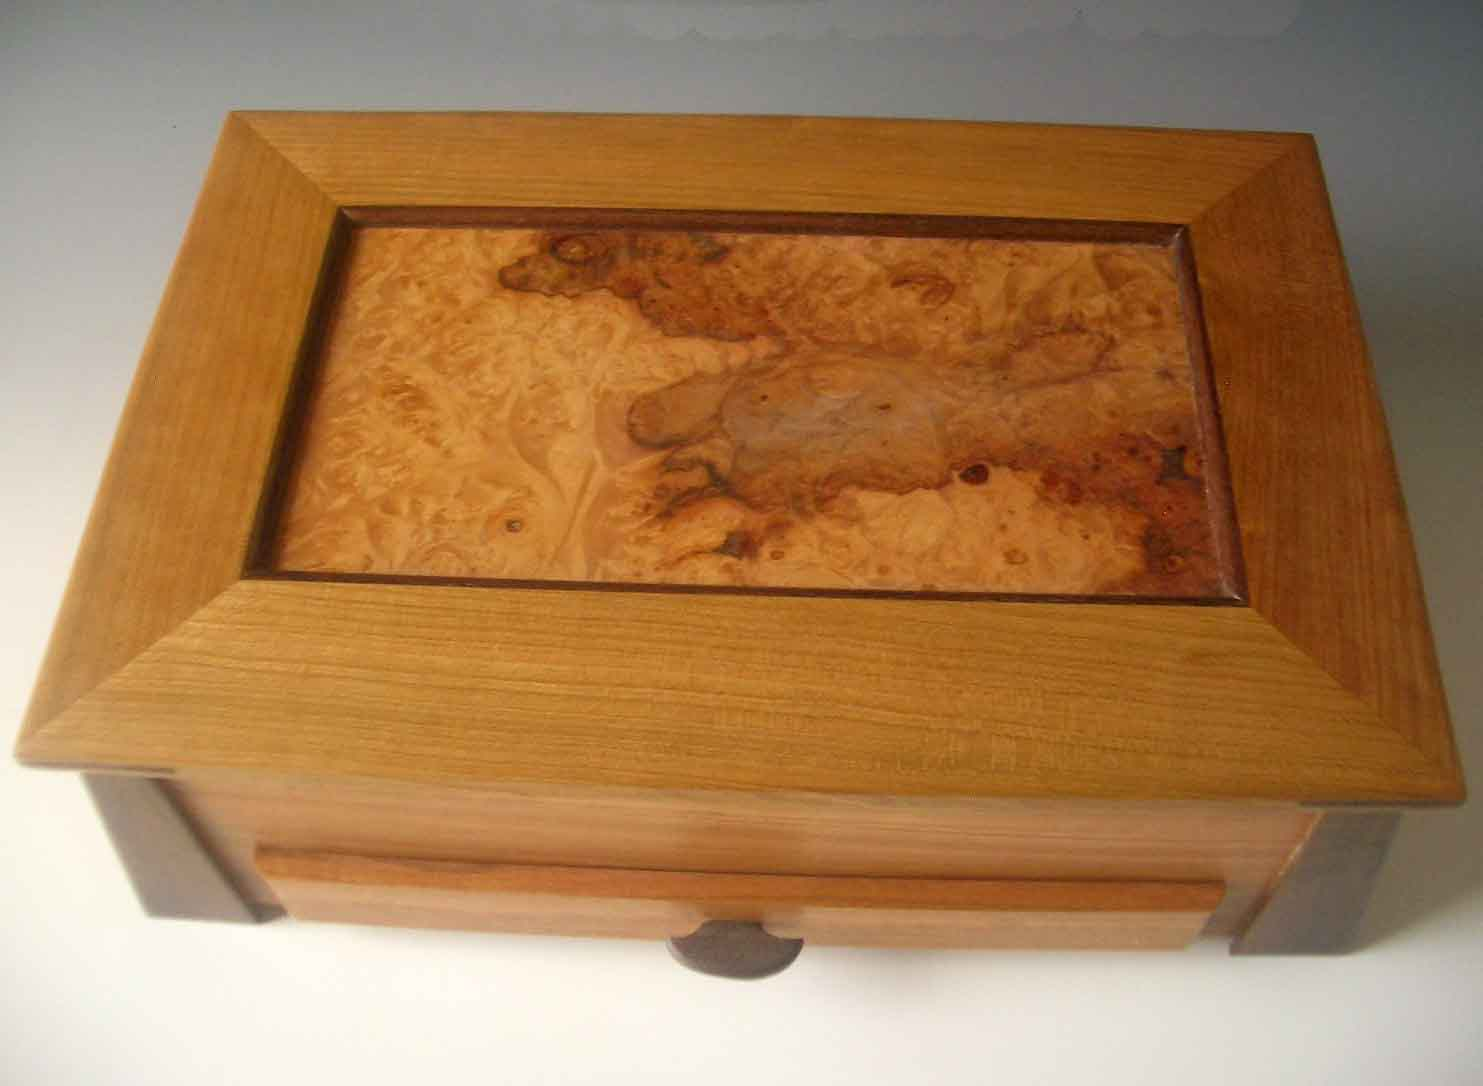 Handmade large wooden jewelry box made of cherry wood and spalted maple burl